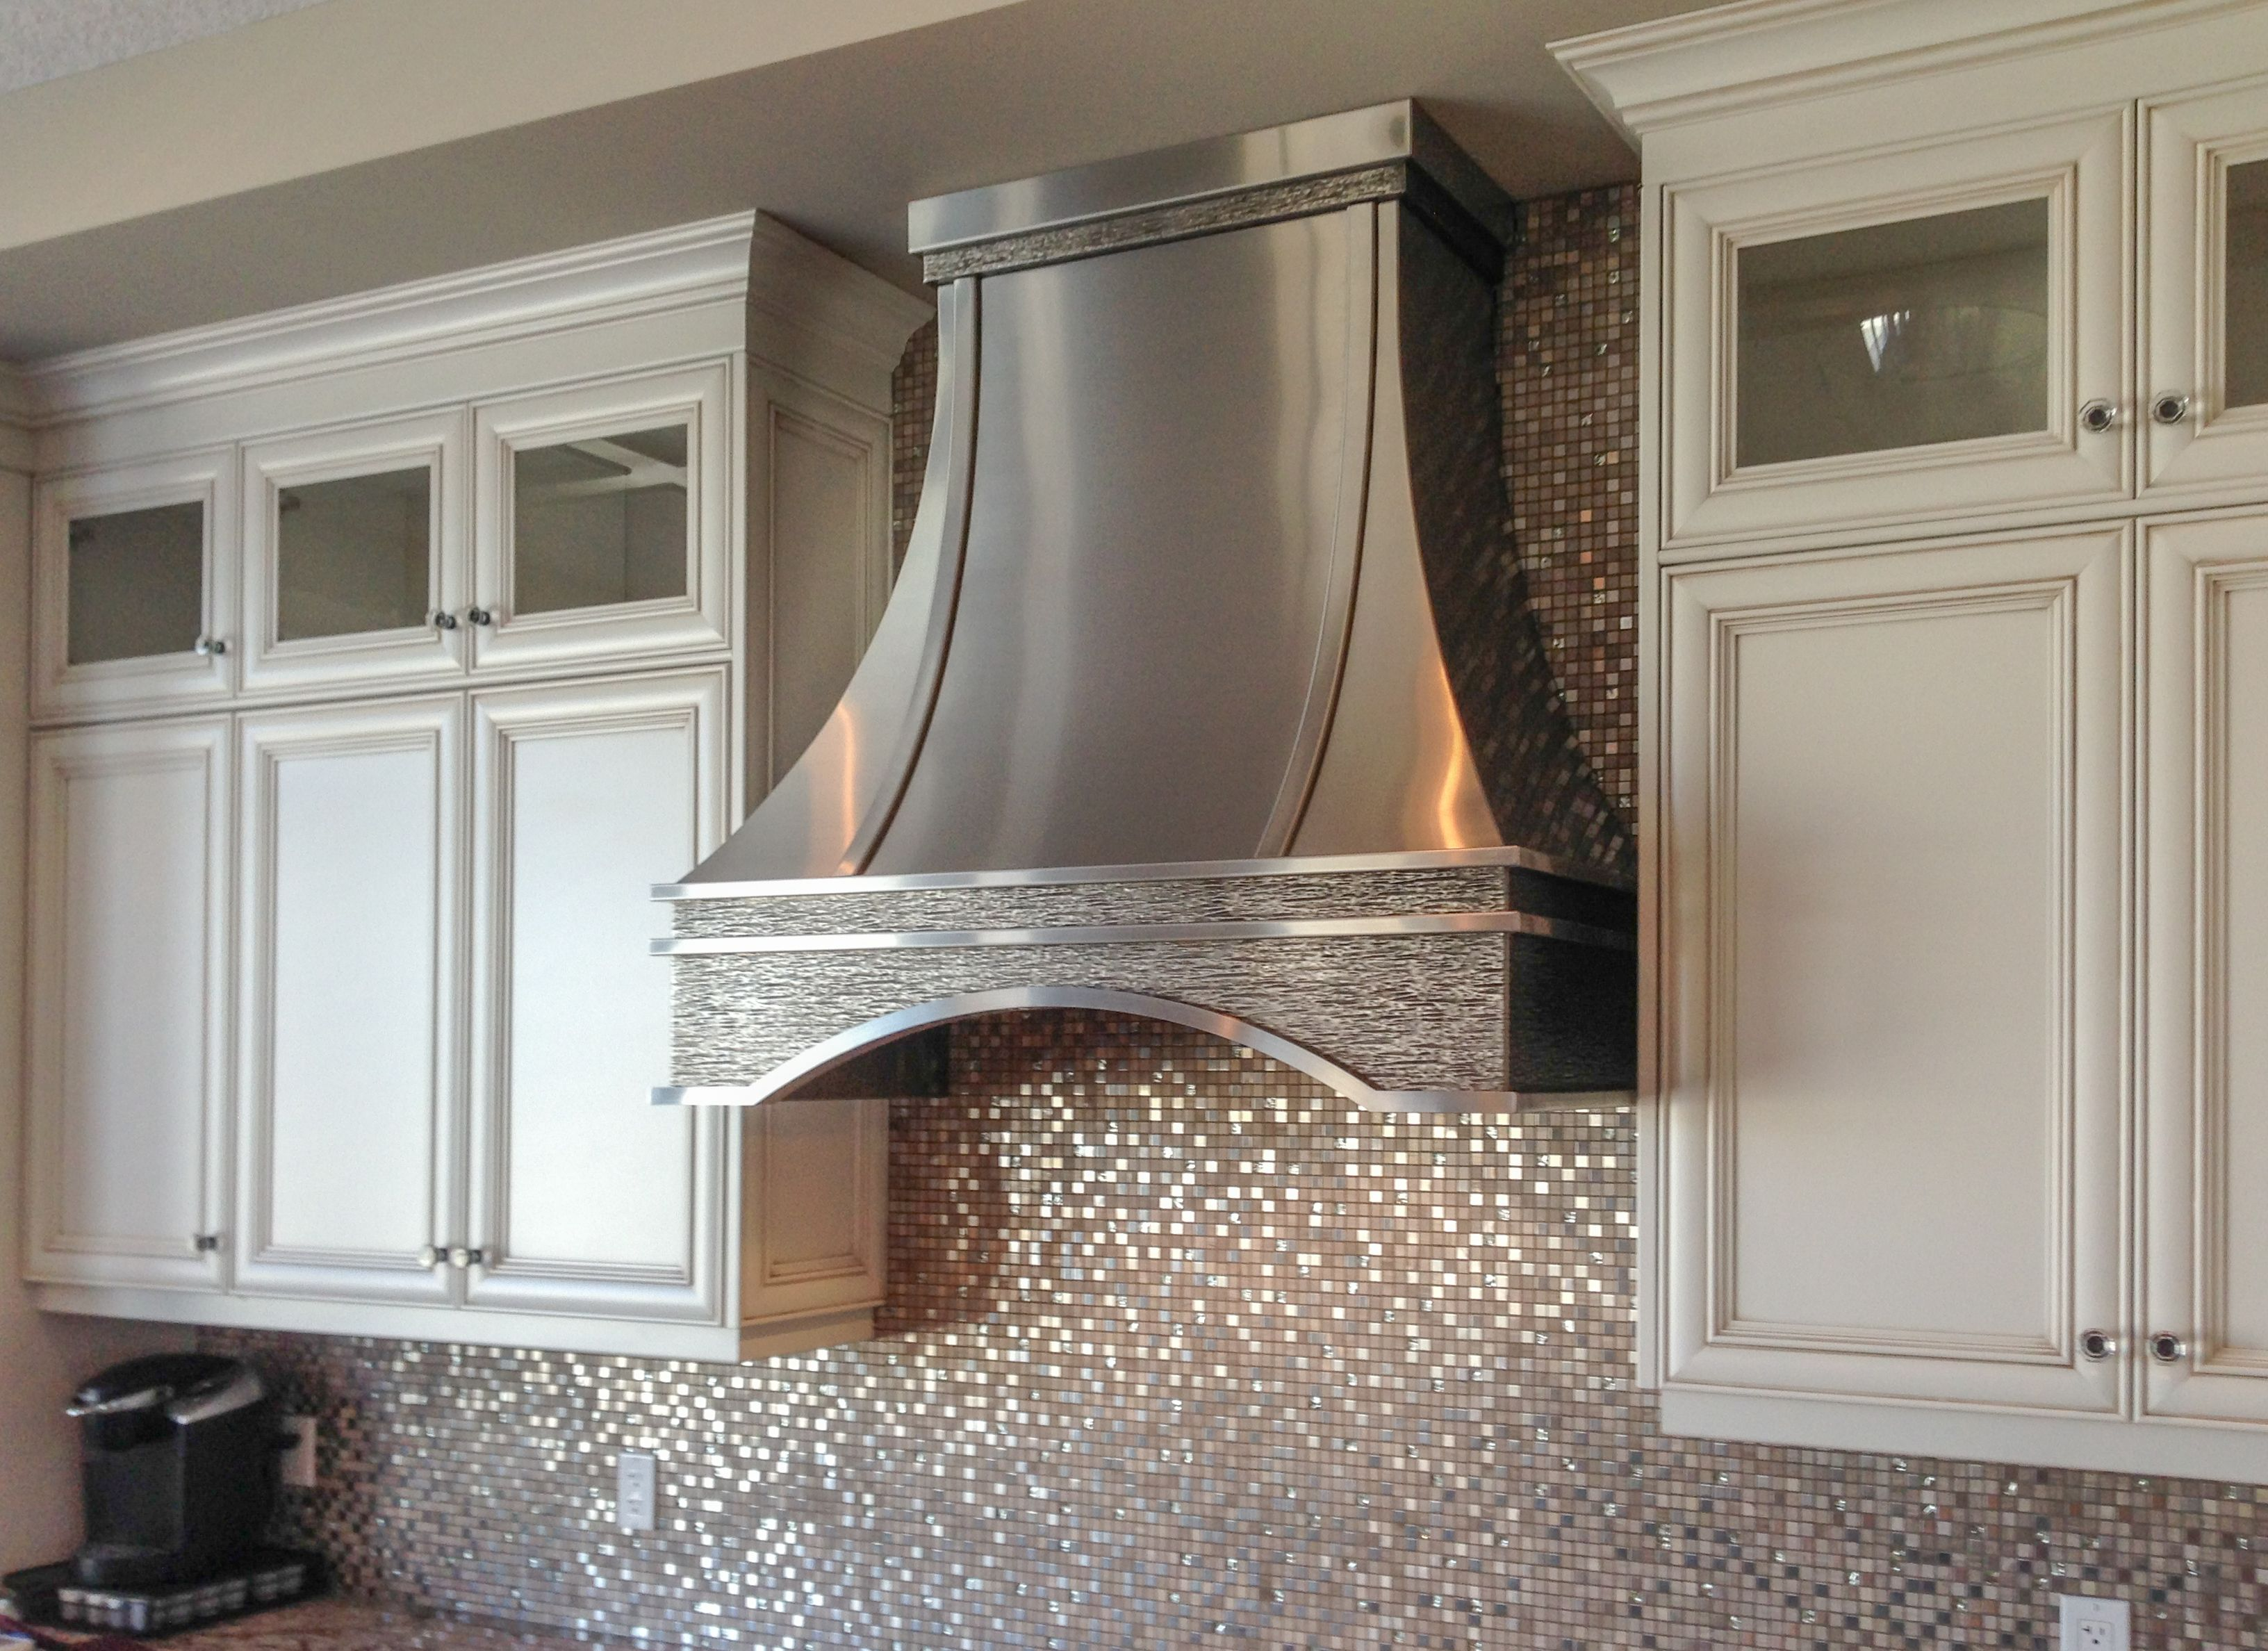 Hoods By Hammersmith Stainless Steel Range Hoods Kitchen Range